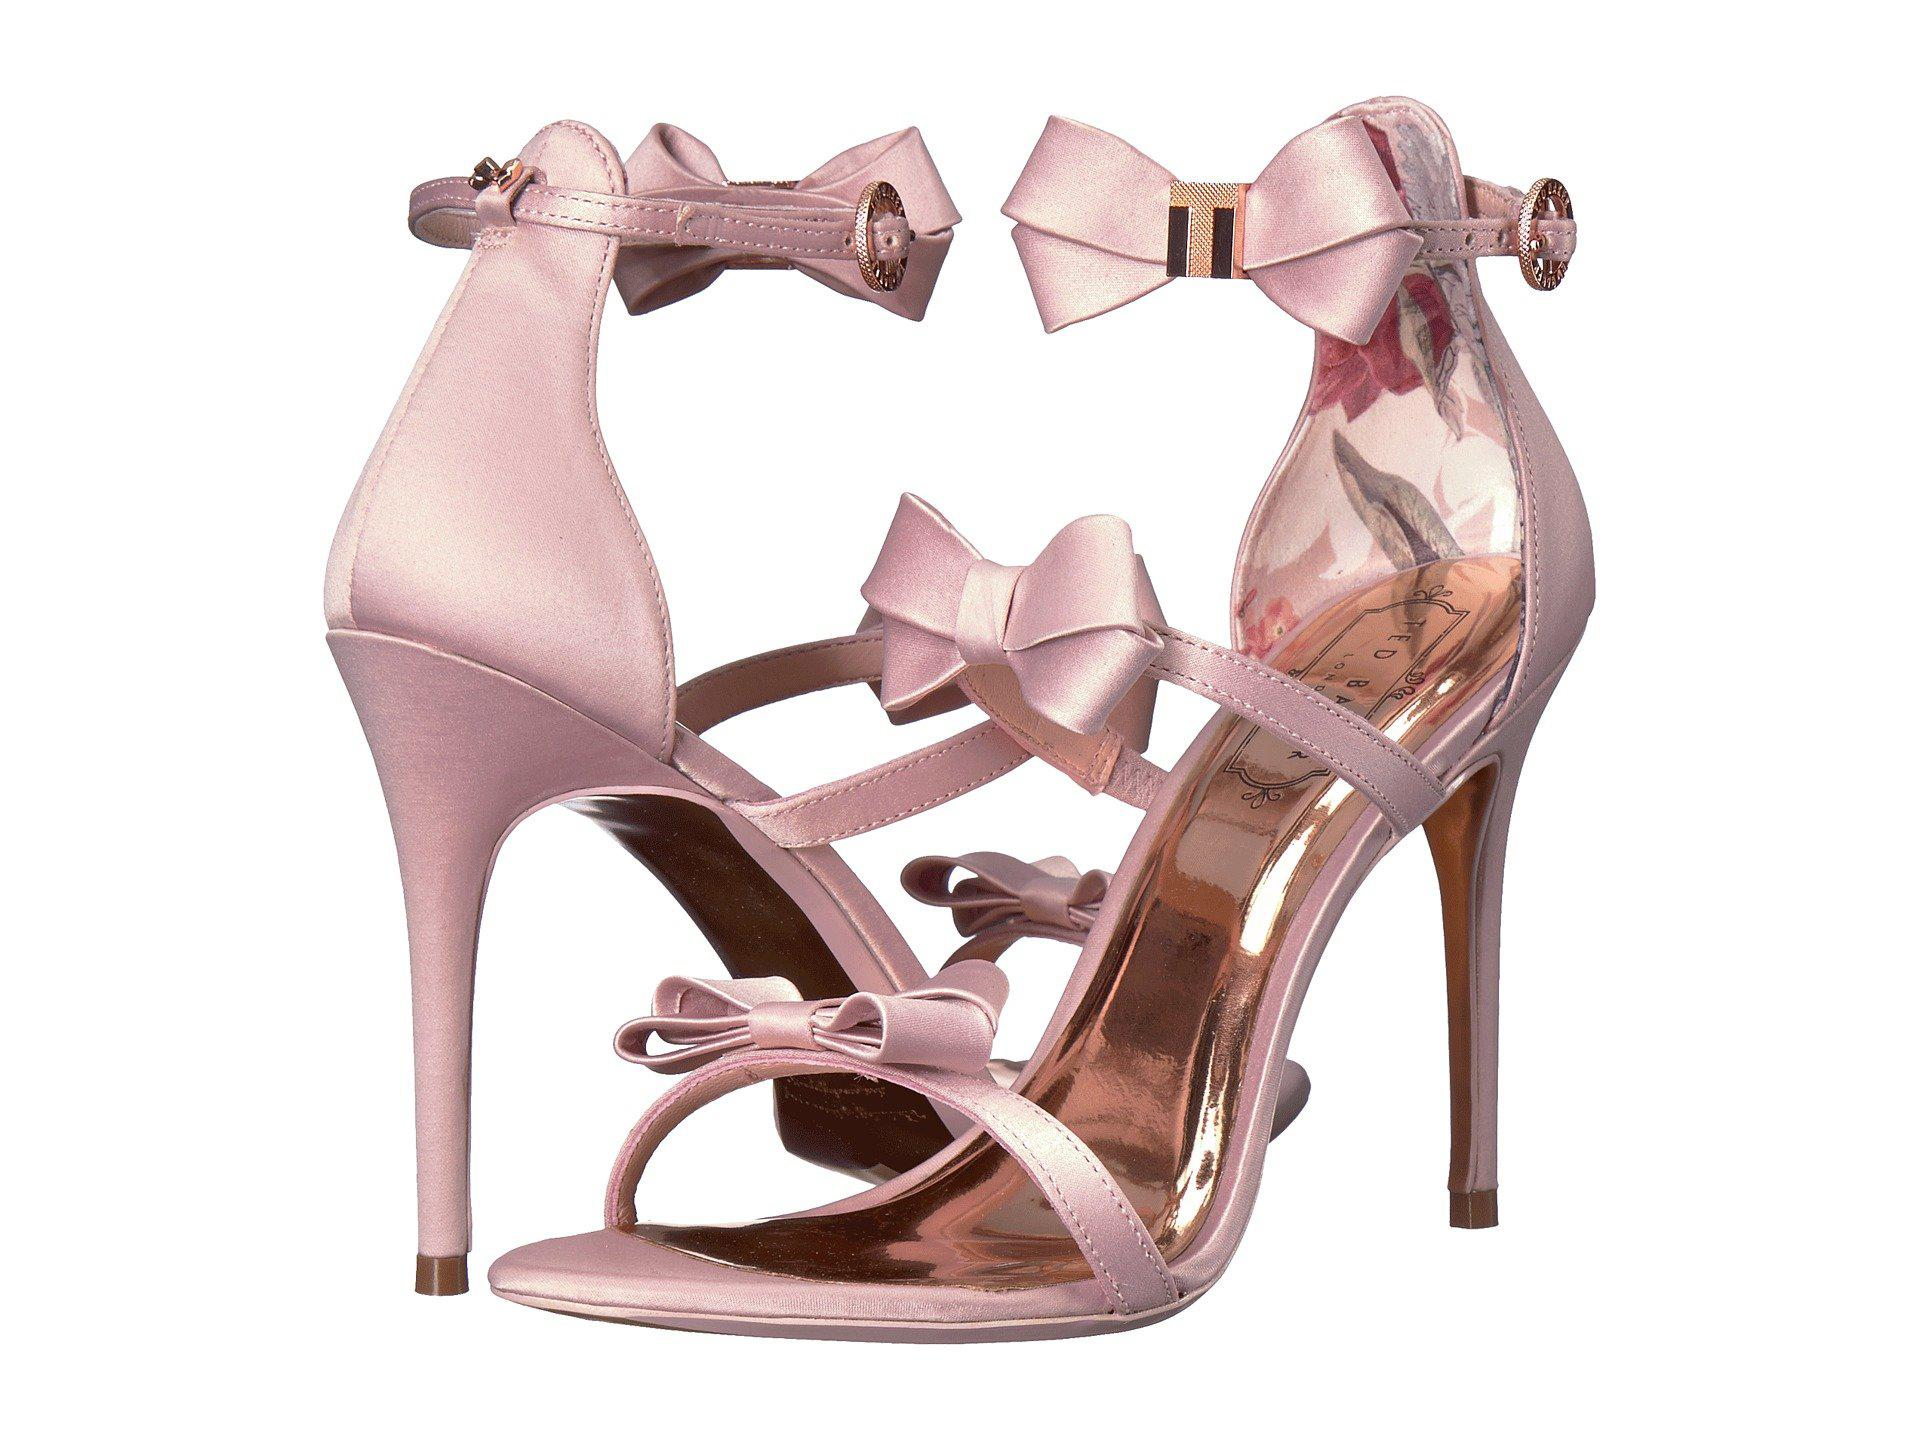 a7a0977ae Lyst - Ted Baker Nuscala Stiletto Sandal in Pink - Save 38%